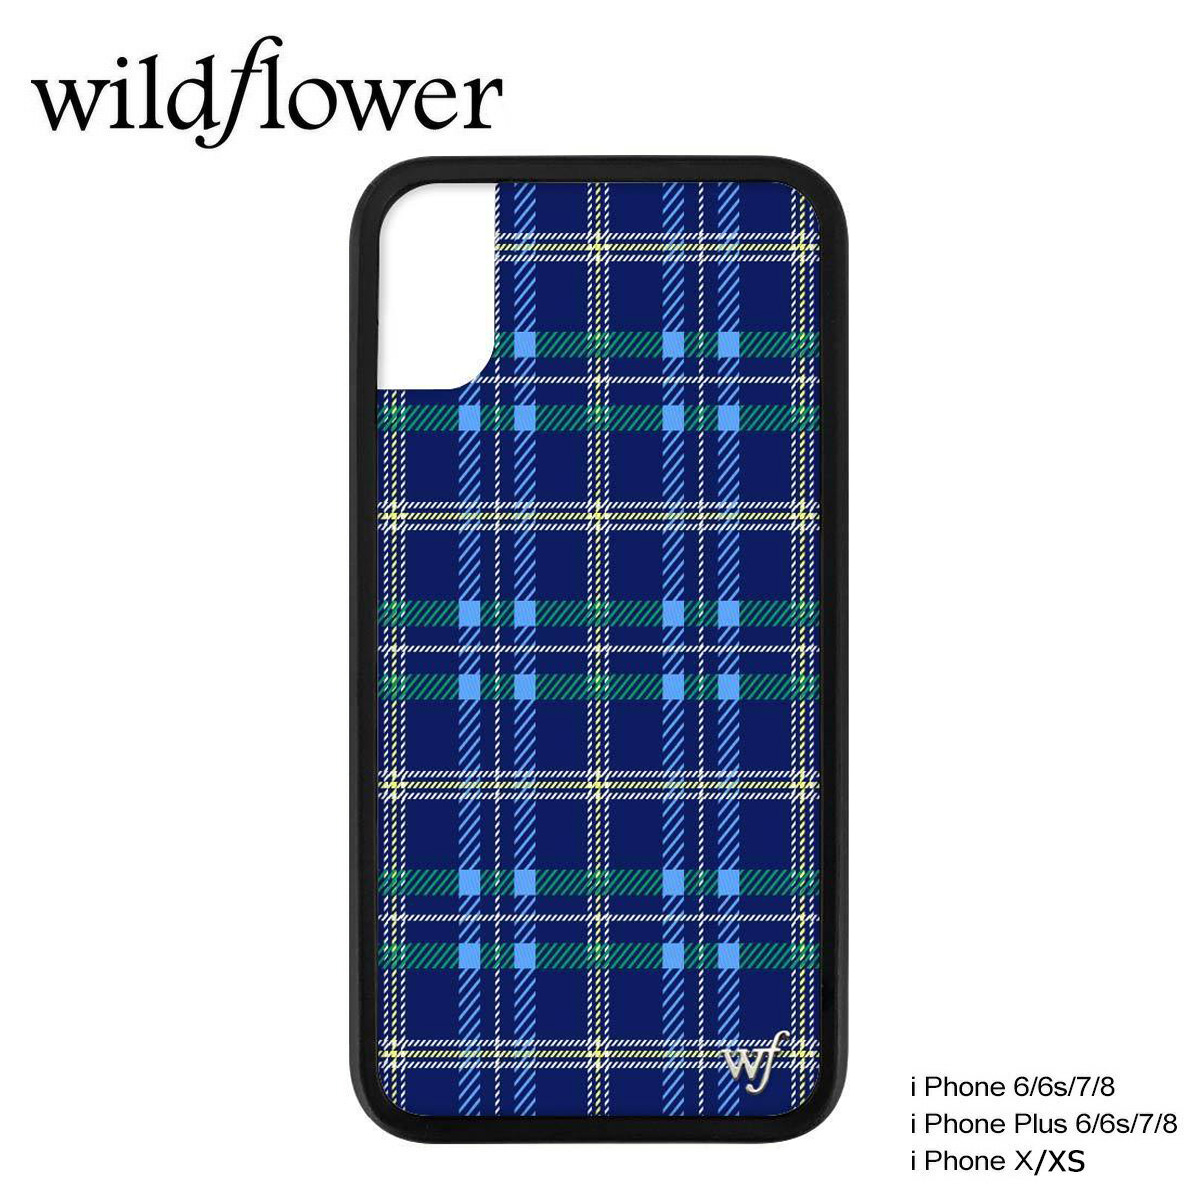 official photos d5a36 5fb19 wildflower iPhone8 X XS iPhone 7 6 6s Plus wild flower case smartphone  eyephone Lady's check blue SKOO